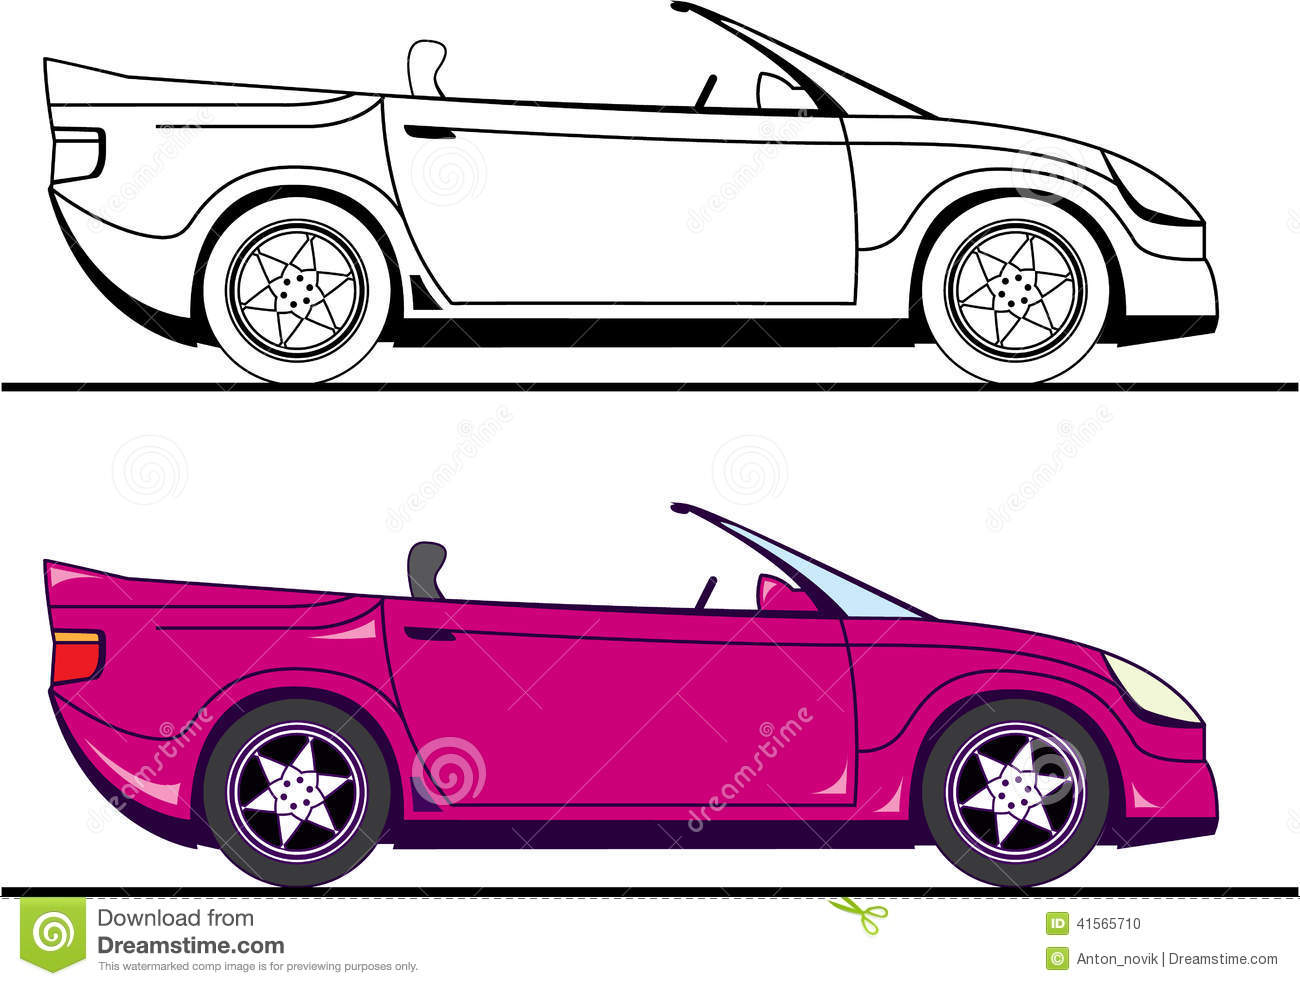 car clip art illustrations - photo #38